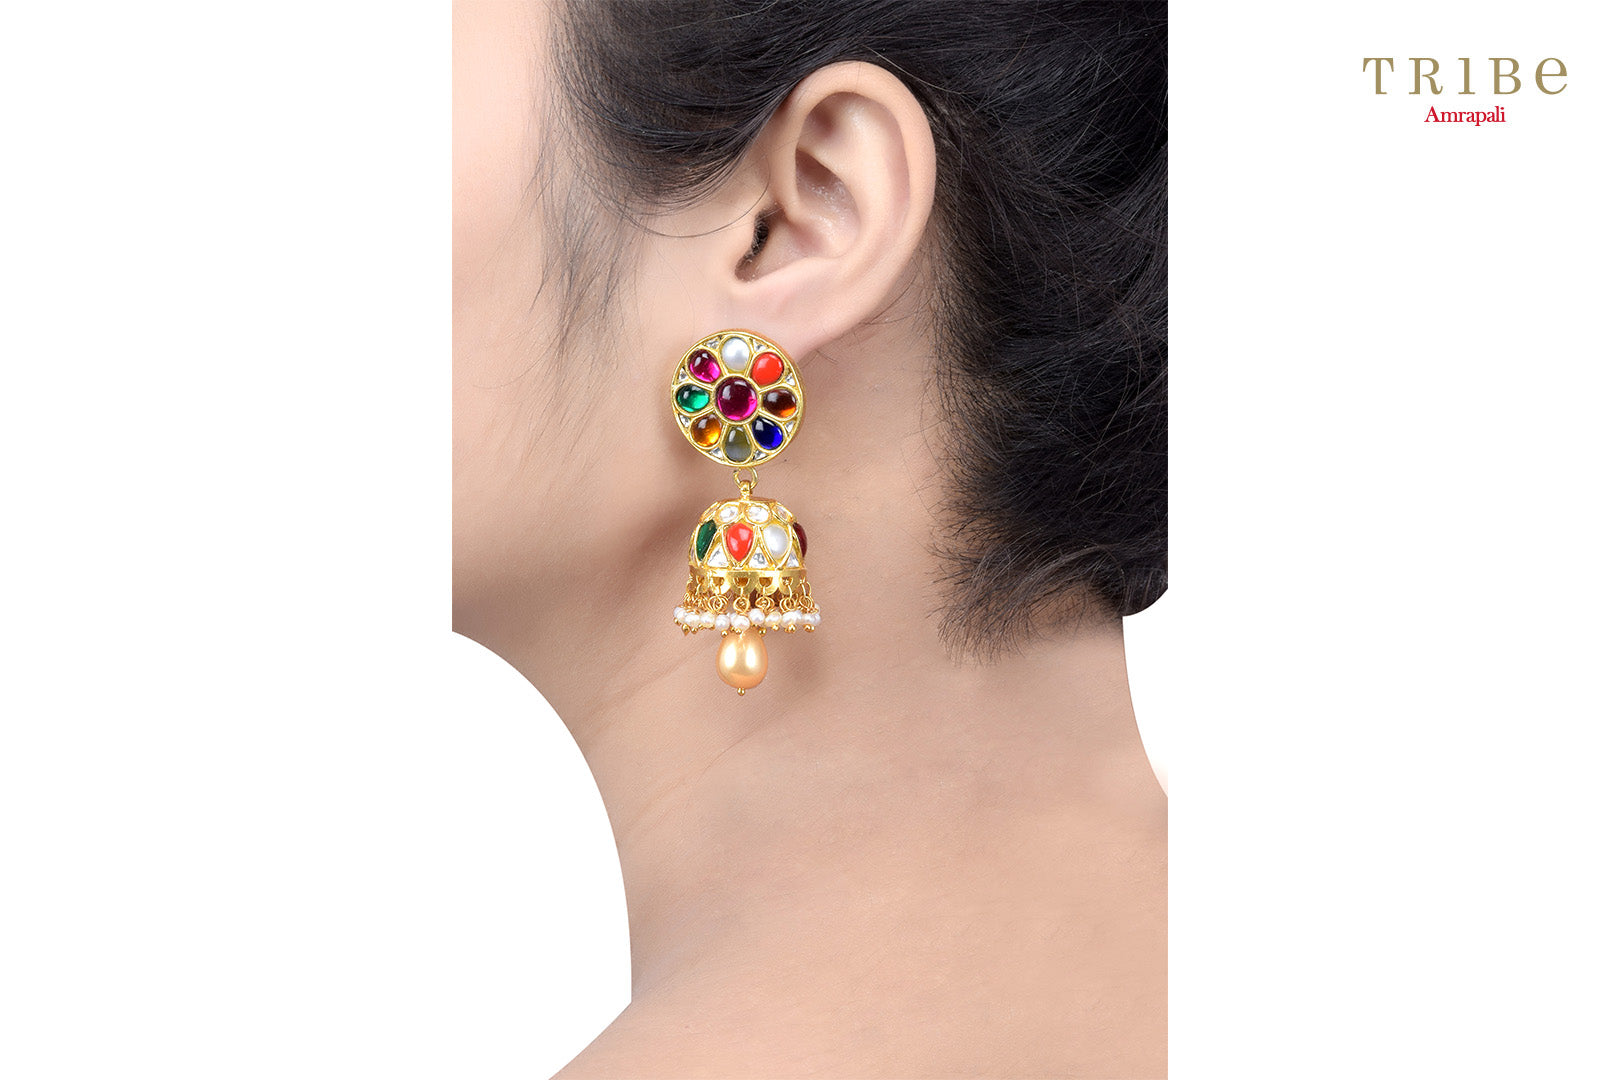 Traditional  Tribe Amrapali silver gold plated round multicolored jhumki earrings buy online in USA. The earrings are perfect to add a spark to your Indian wedding look. If you want to shop such ethnic Indian silver gold plated jewellery in USA, then look no further than Pure Elegance exclusive fashion store.-ear view